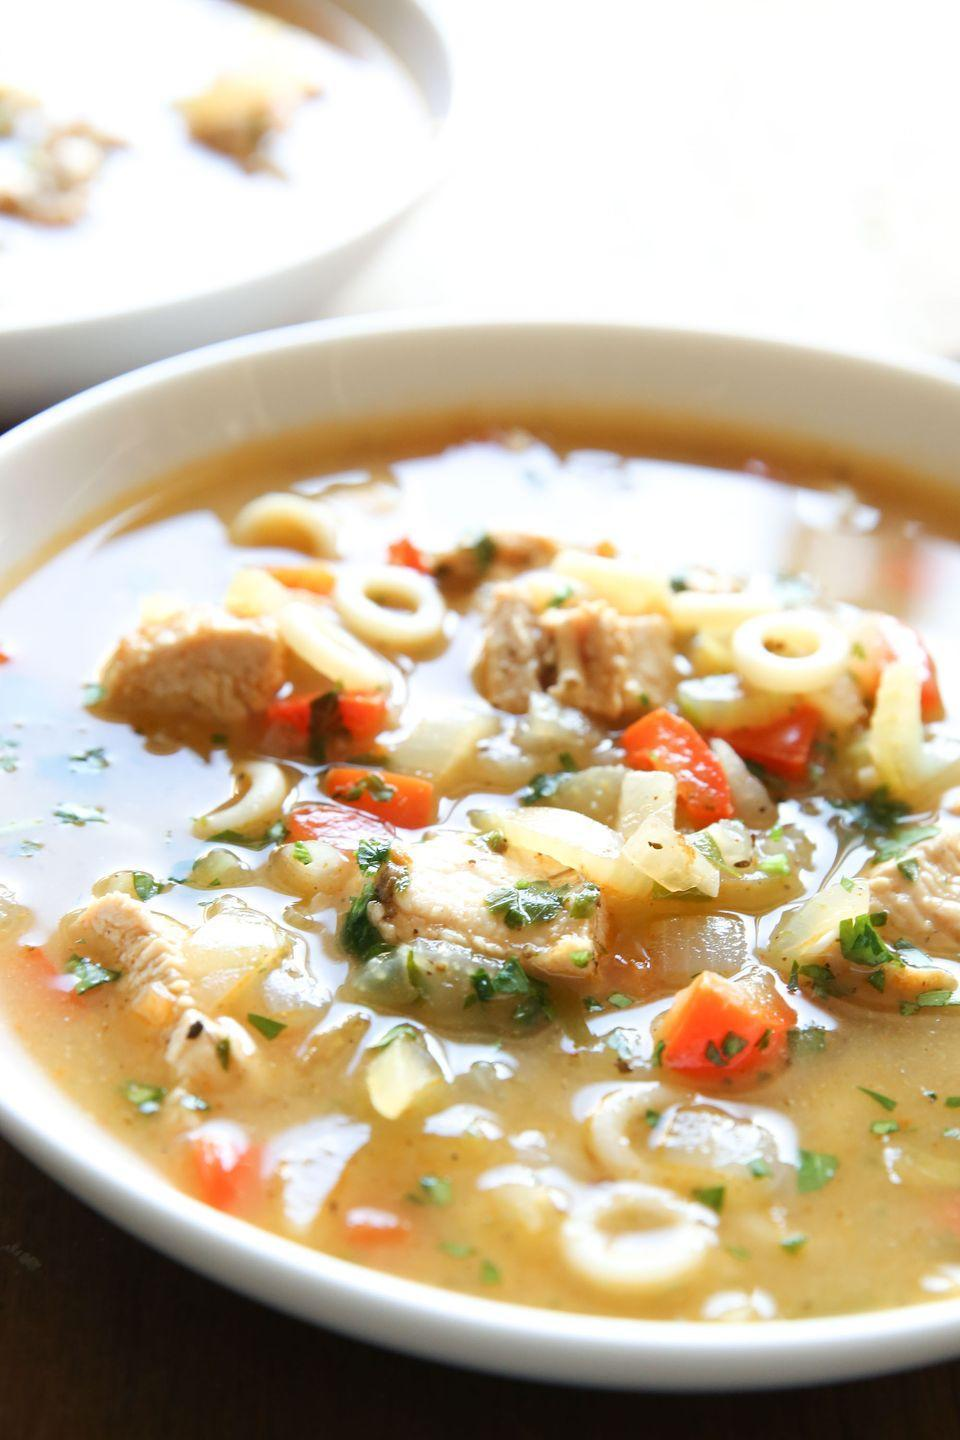 "<p>It's the zestiest way to comfort yourself.</p><p>Get the recipe from <a href=""https://www.delish.com/cooking/recipe-ideas/recipes/a51163/cajun-chicken-noodle-soup-recipe/"" rel=""nofollow noopener"" target=""_blank"" data-ylk=""slk:Delish"" class=""link rapid-noclick-resp"">Delish</a>.</p>"